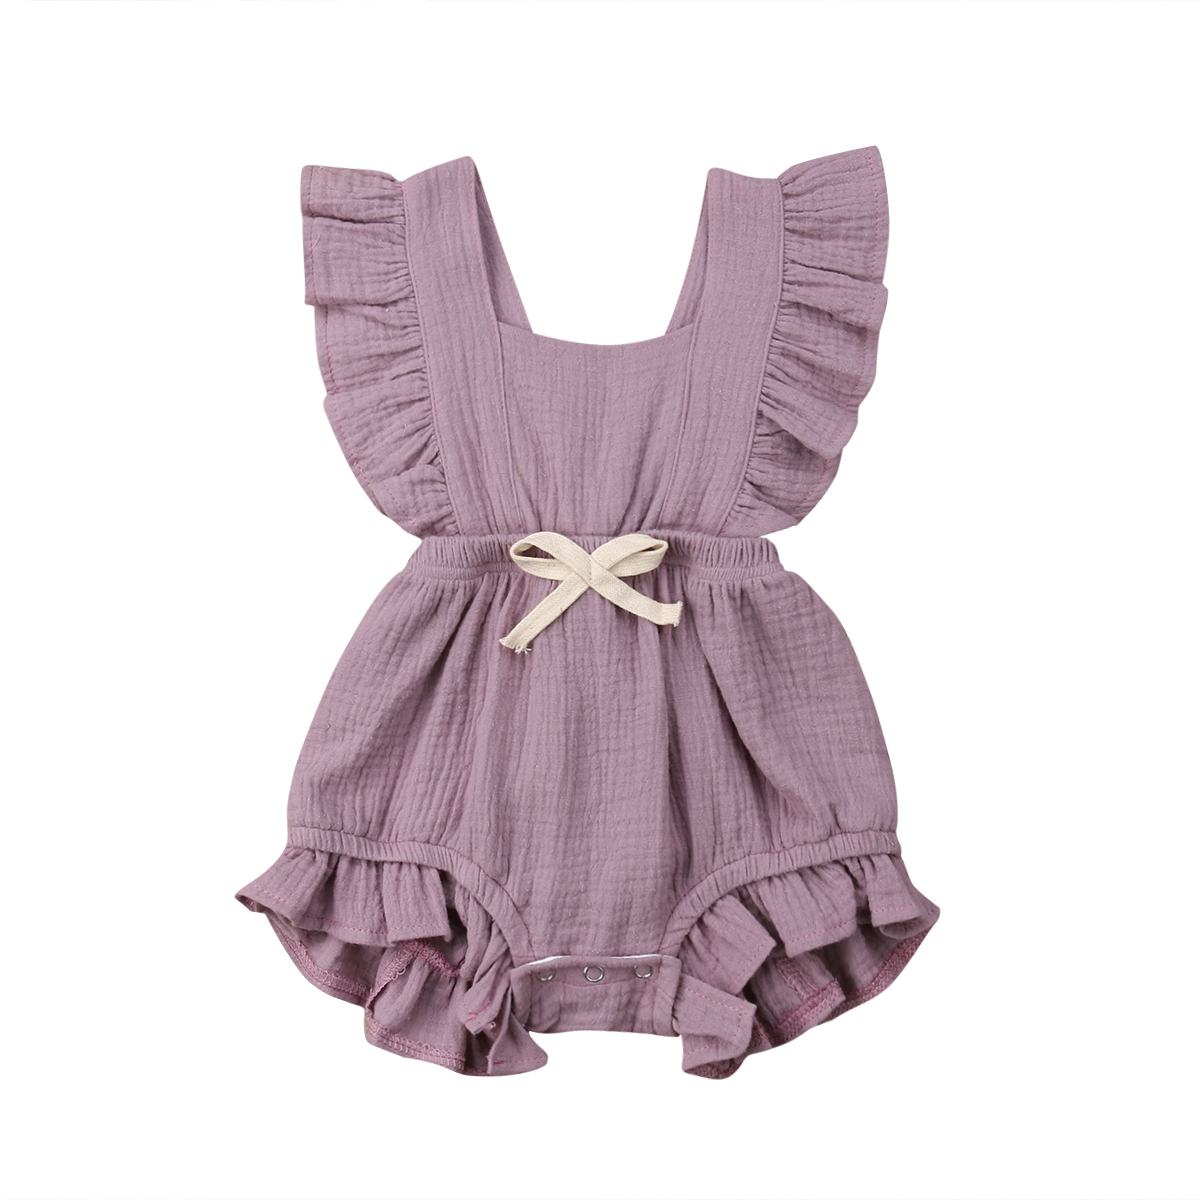 6 Color Cute Baby Girl Ruffle Solid Color Romper Jumpsuit Outfits Sunsuit for Newborn Infant Children Innrech Market.com